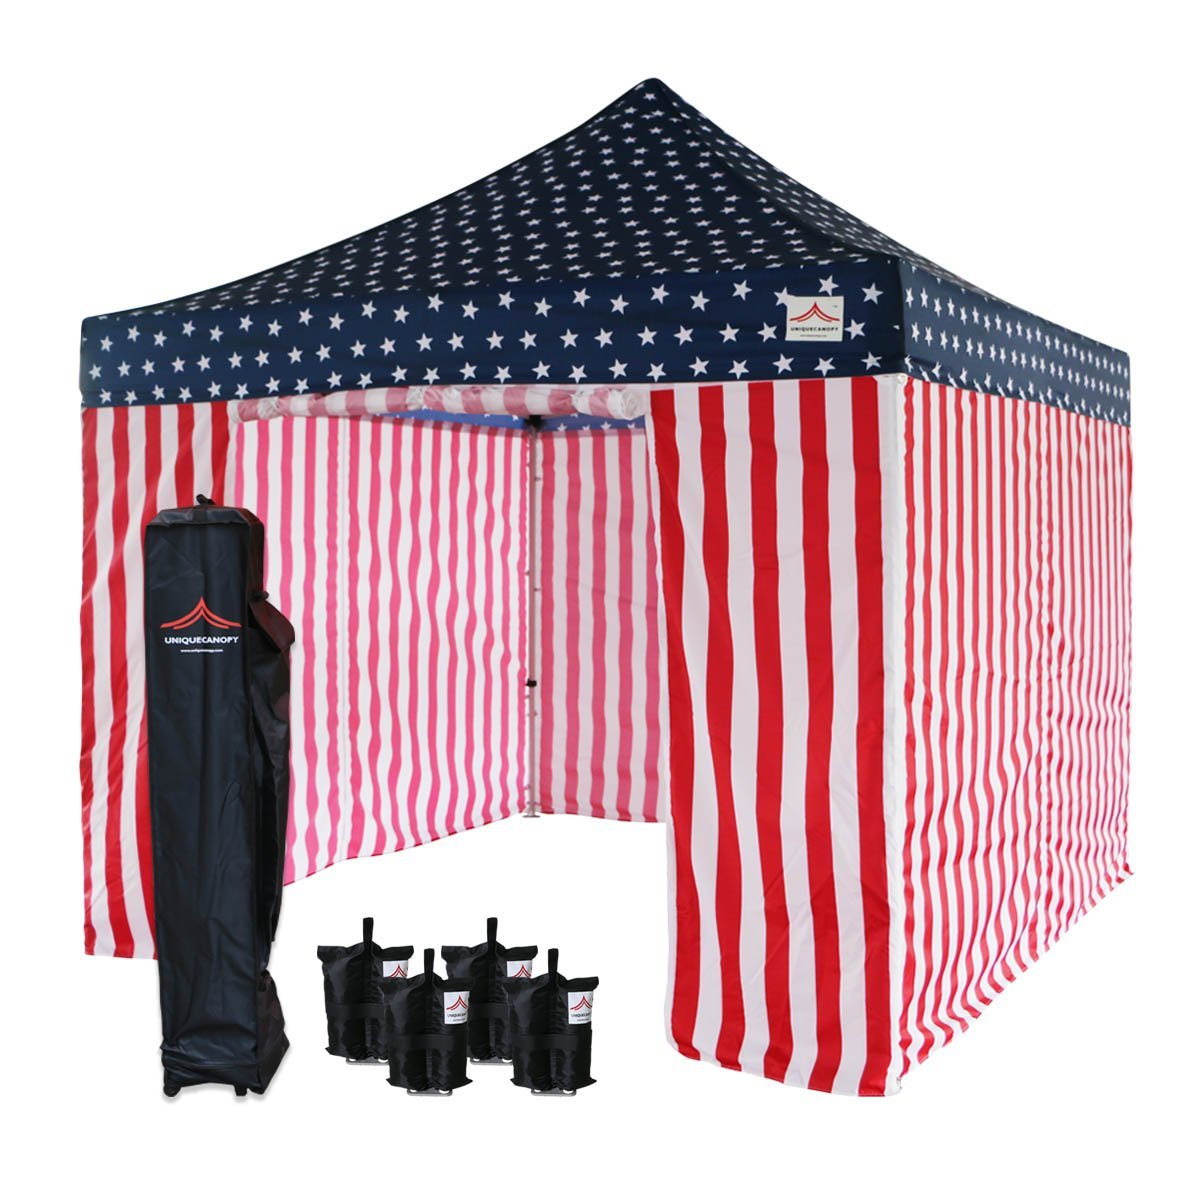 UNIQUECANOPY 10x10 Ez Pop up Canopy Tents for Parties Outdoor Portable Instant Folded Commercial Popup Shelter, with 4 Zippered Side Walls and Wheeled Carrying Bag Bonus 4 Sandbags Flag